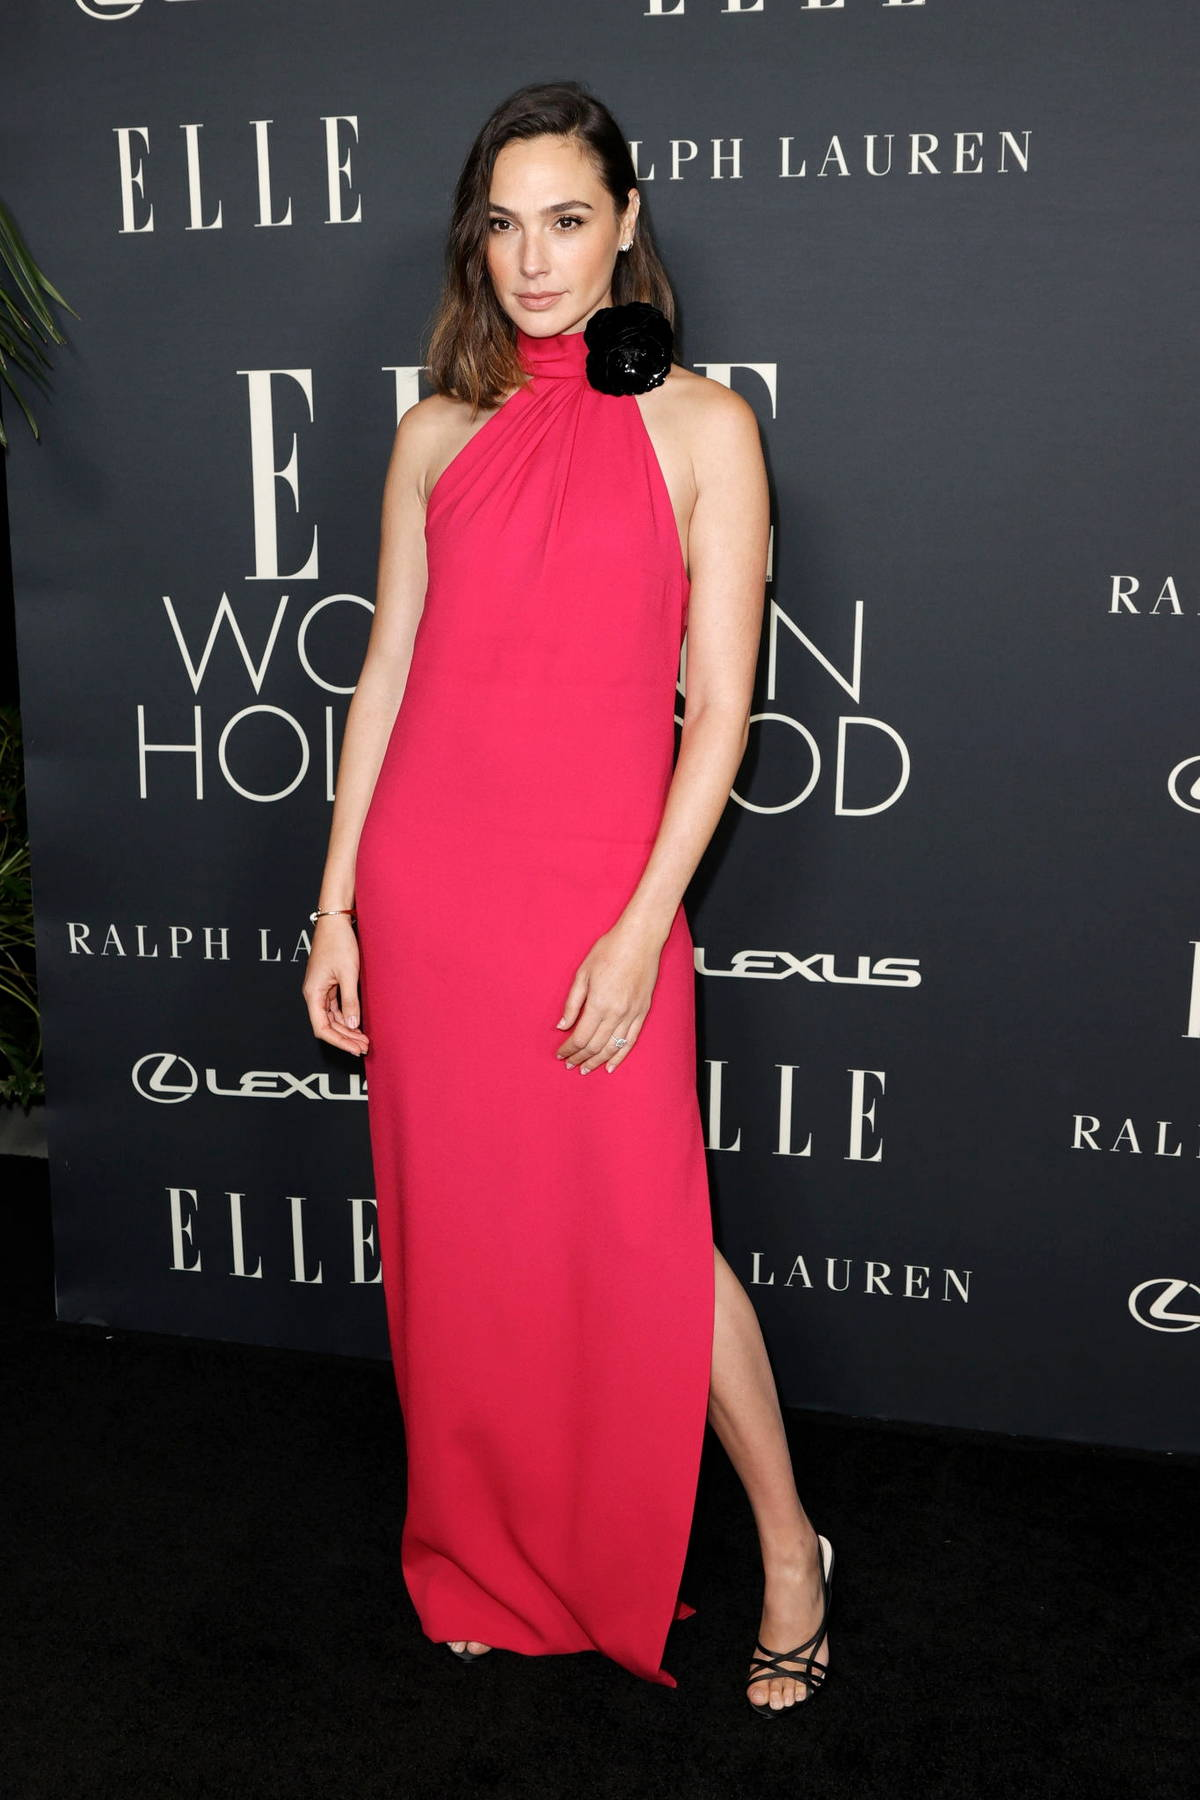 Gal Gadot attends ELLE's 27th Annual Women In Hollywood Celebration in Los Angeles